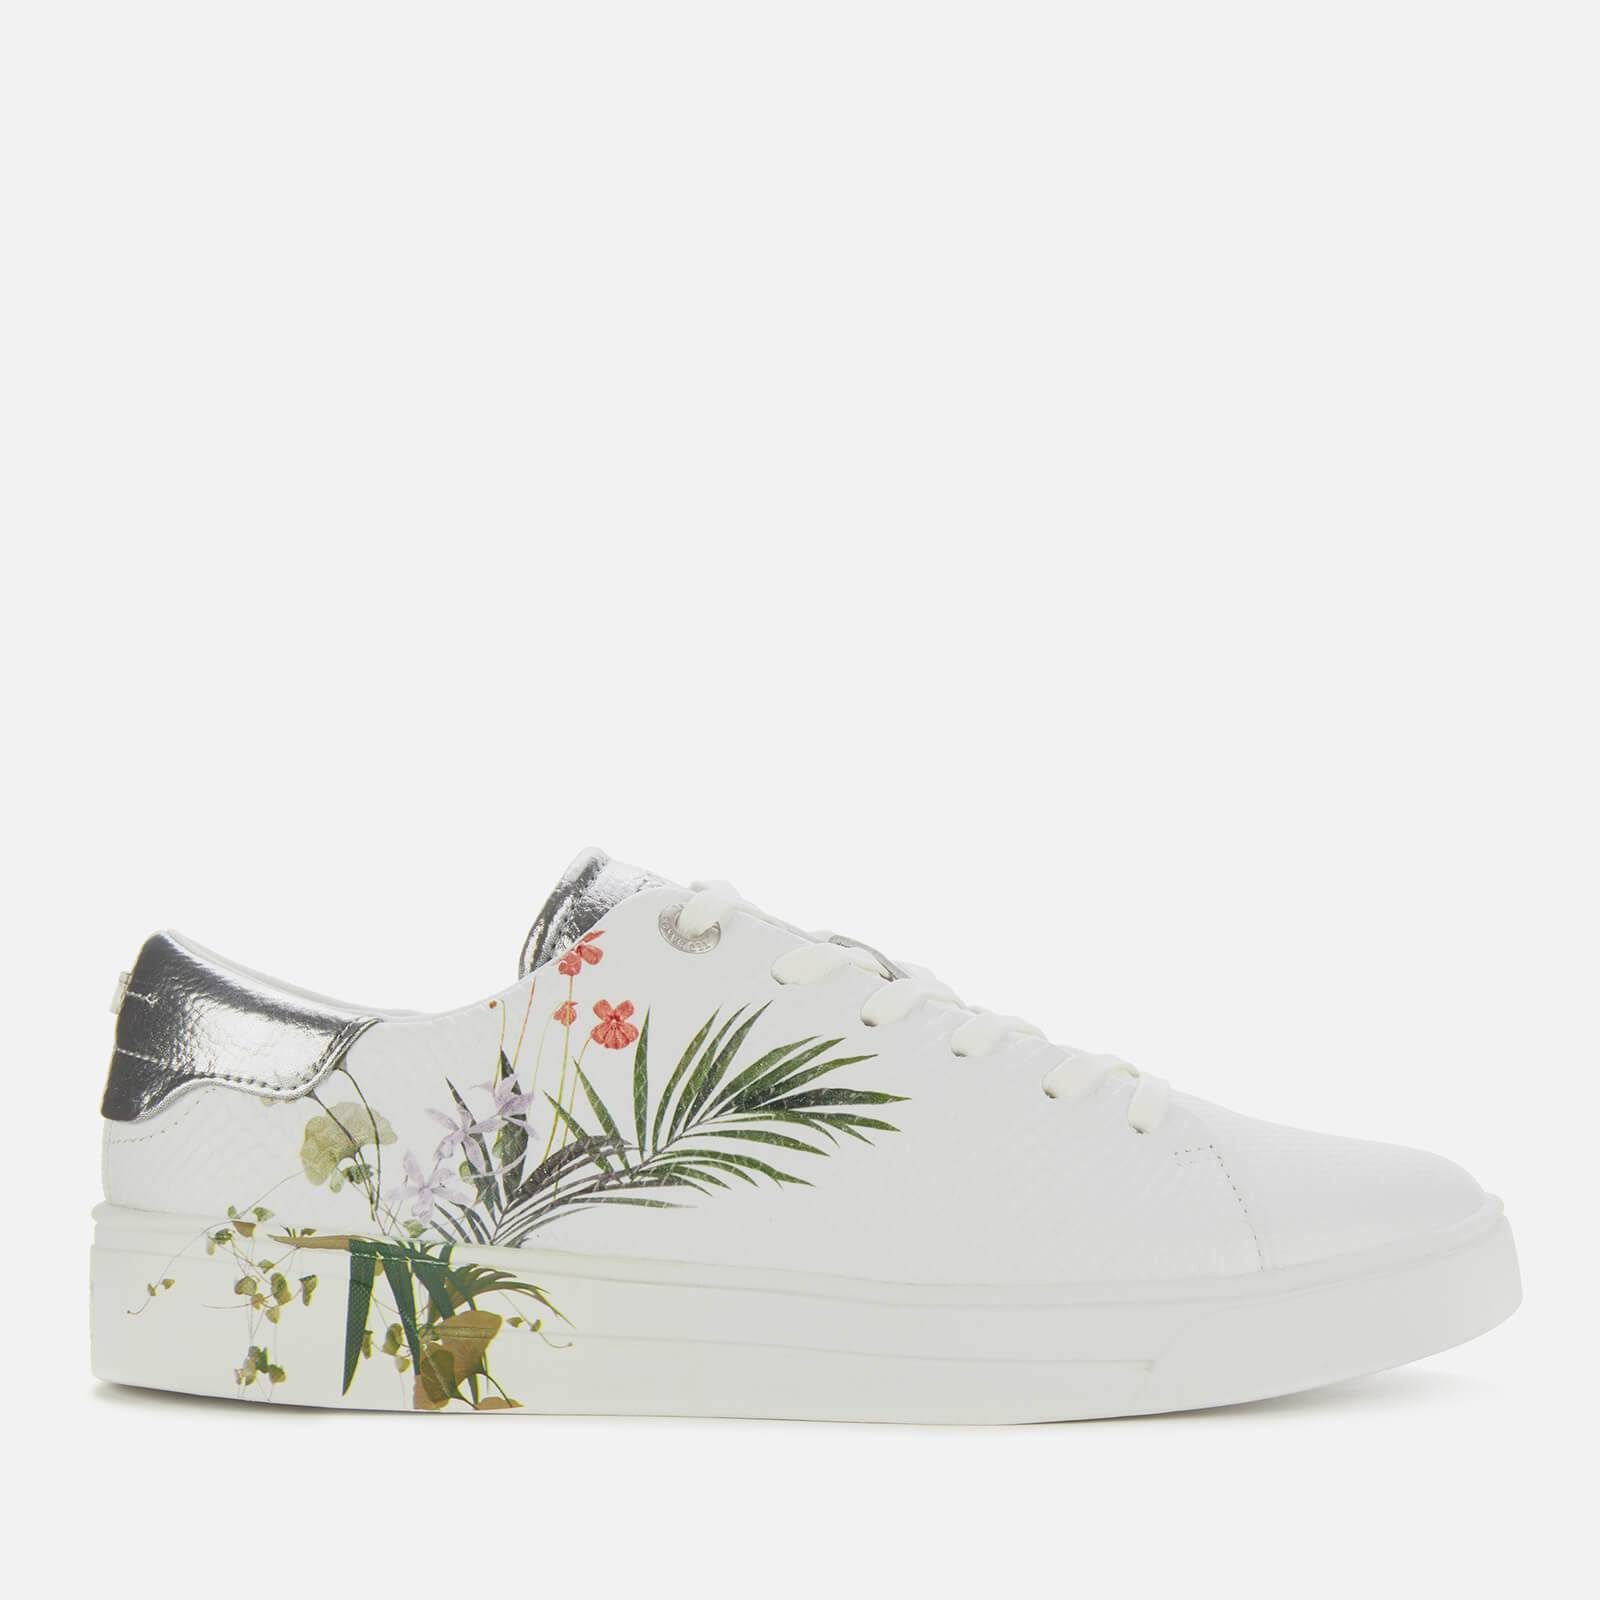 Ted Baker Women's Penil Leather Low Top Trainers - White - UK 4